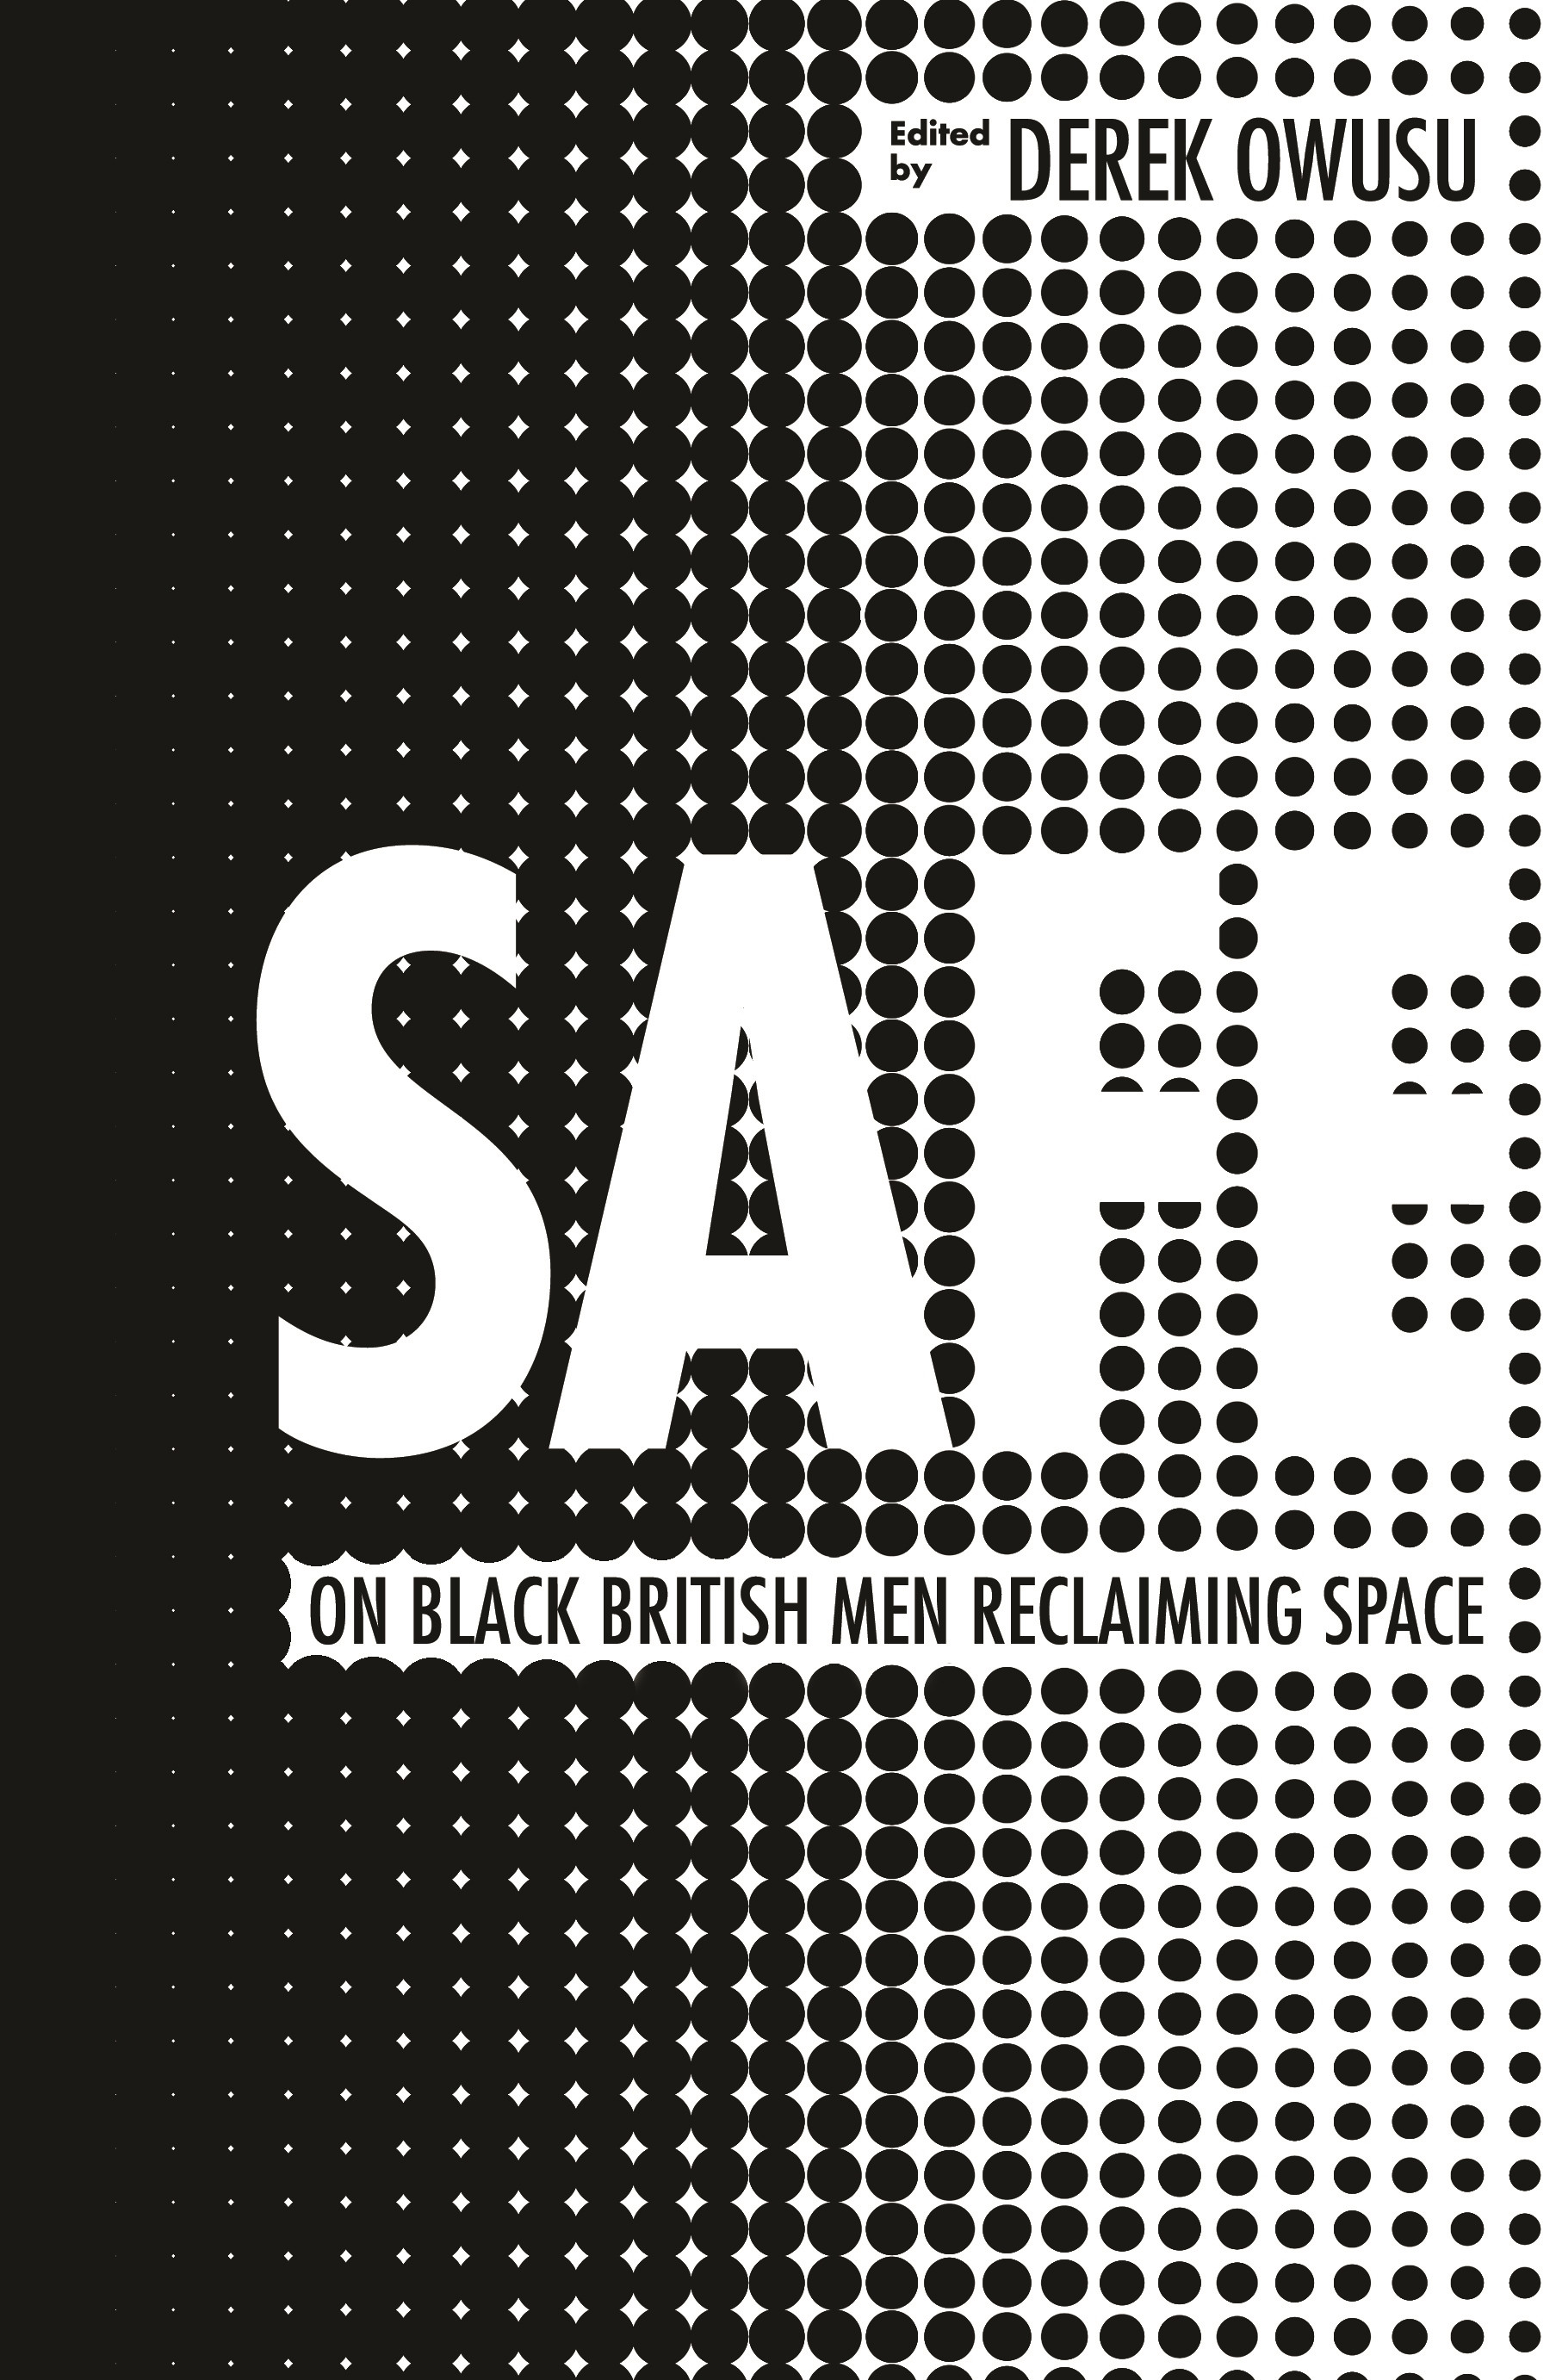 Featured Book - Safe: on Black British Men Reclaiming Space, ed. by Derek Owusu (Orion, 2019)